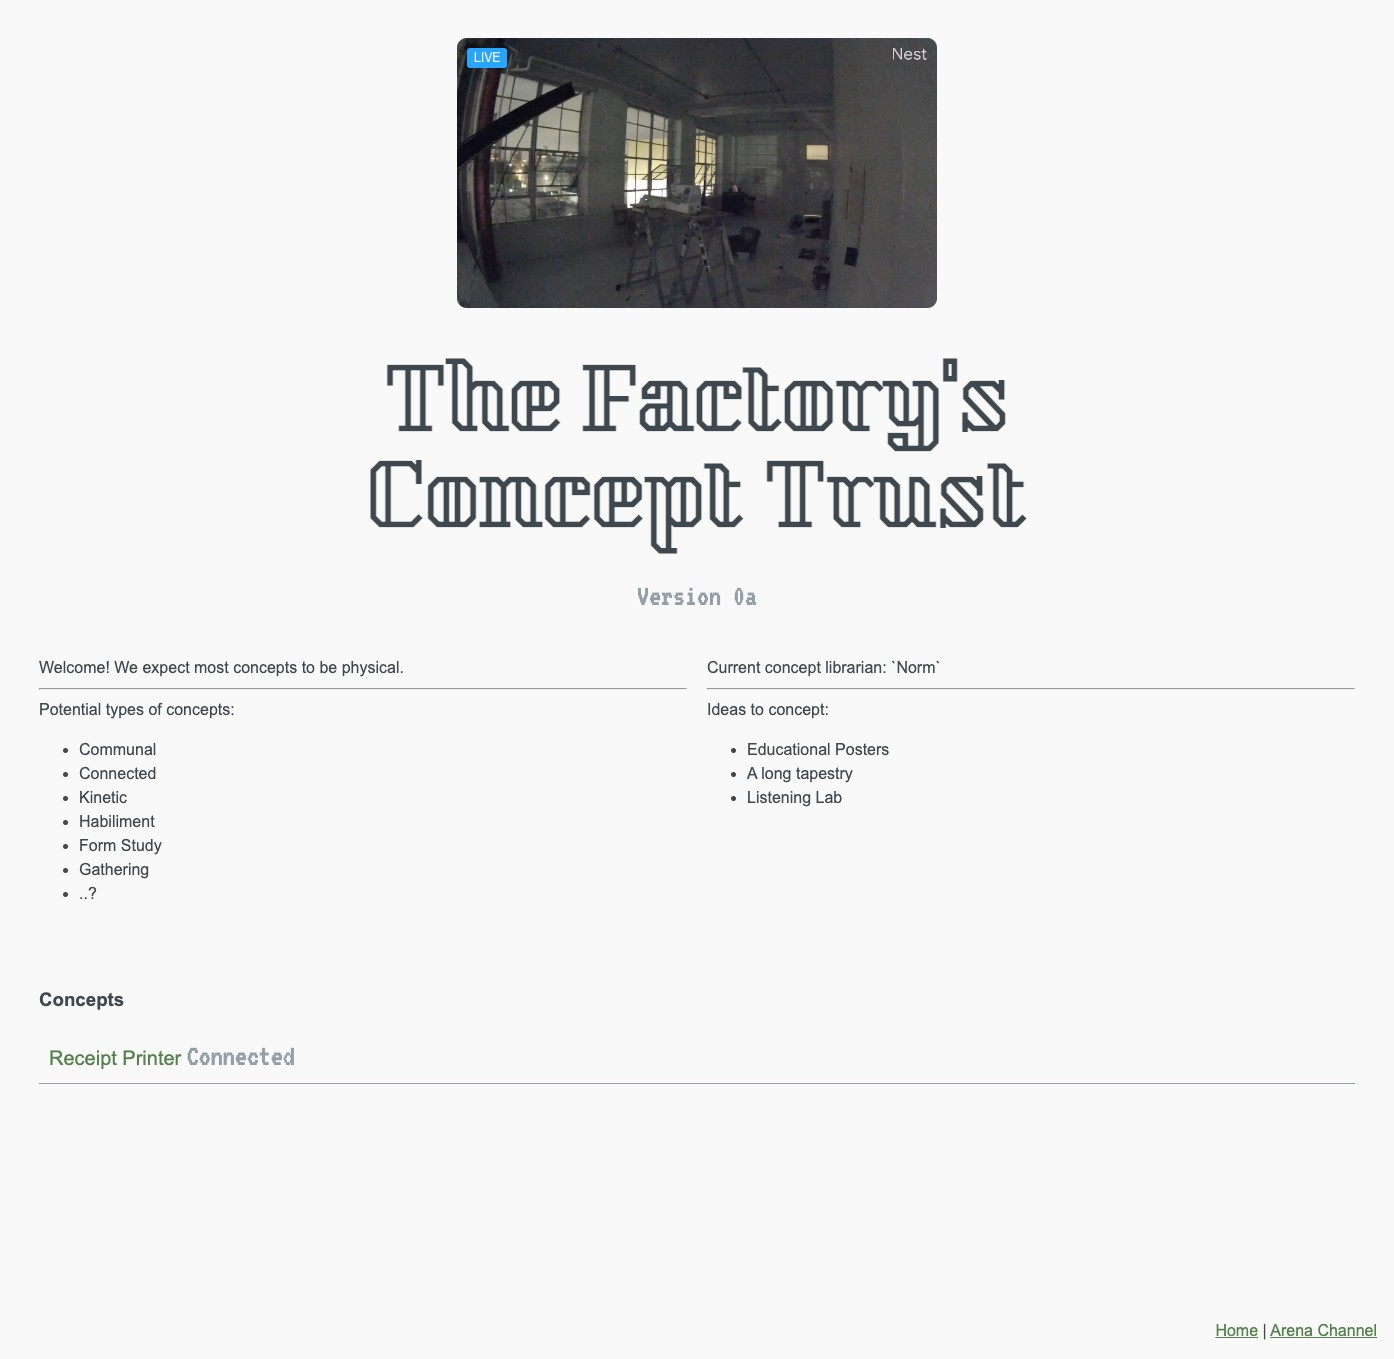 The Factory's trust version 0a